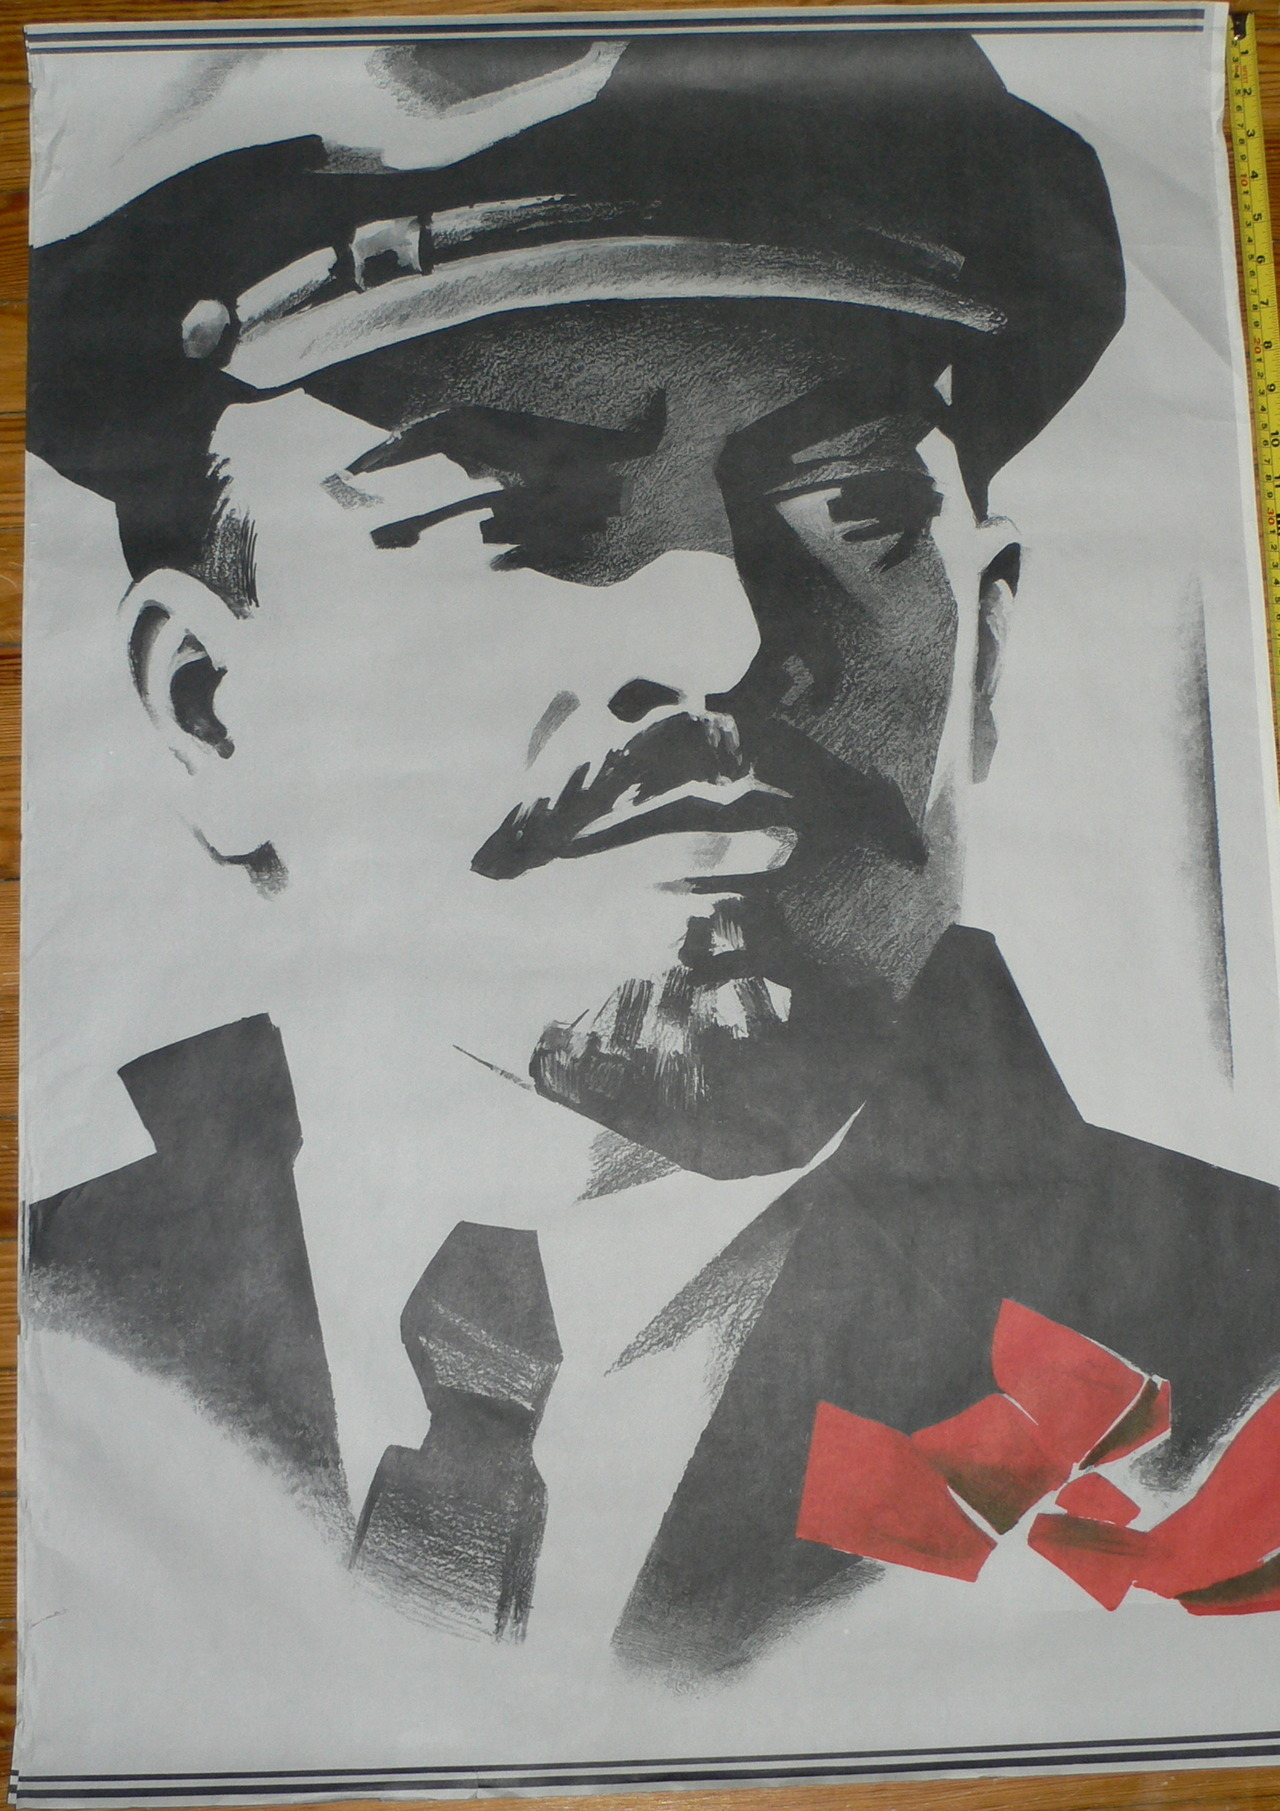 Some old school Soviet propaganda posters in one of my collections..enjoy! The last one is an anti-Stalin poster from the era of Perestroika